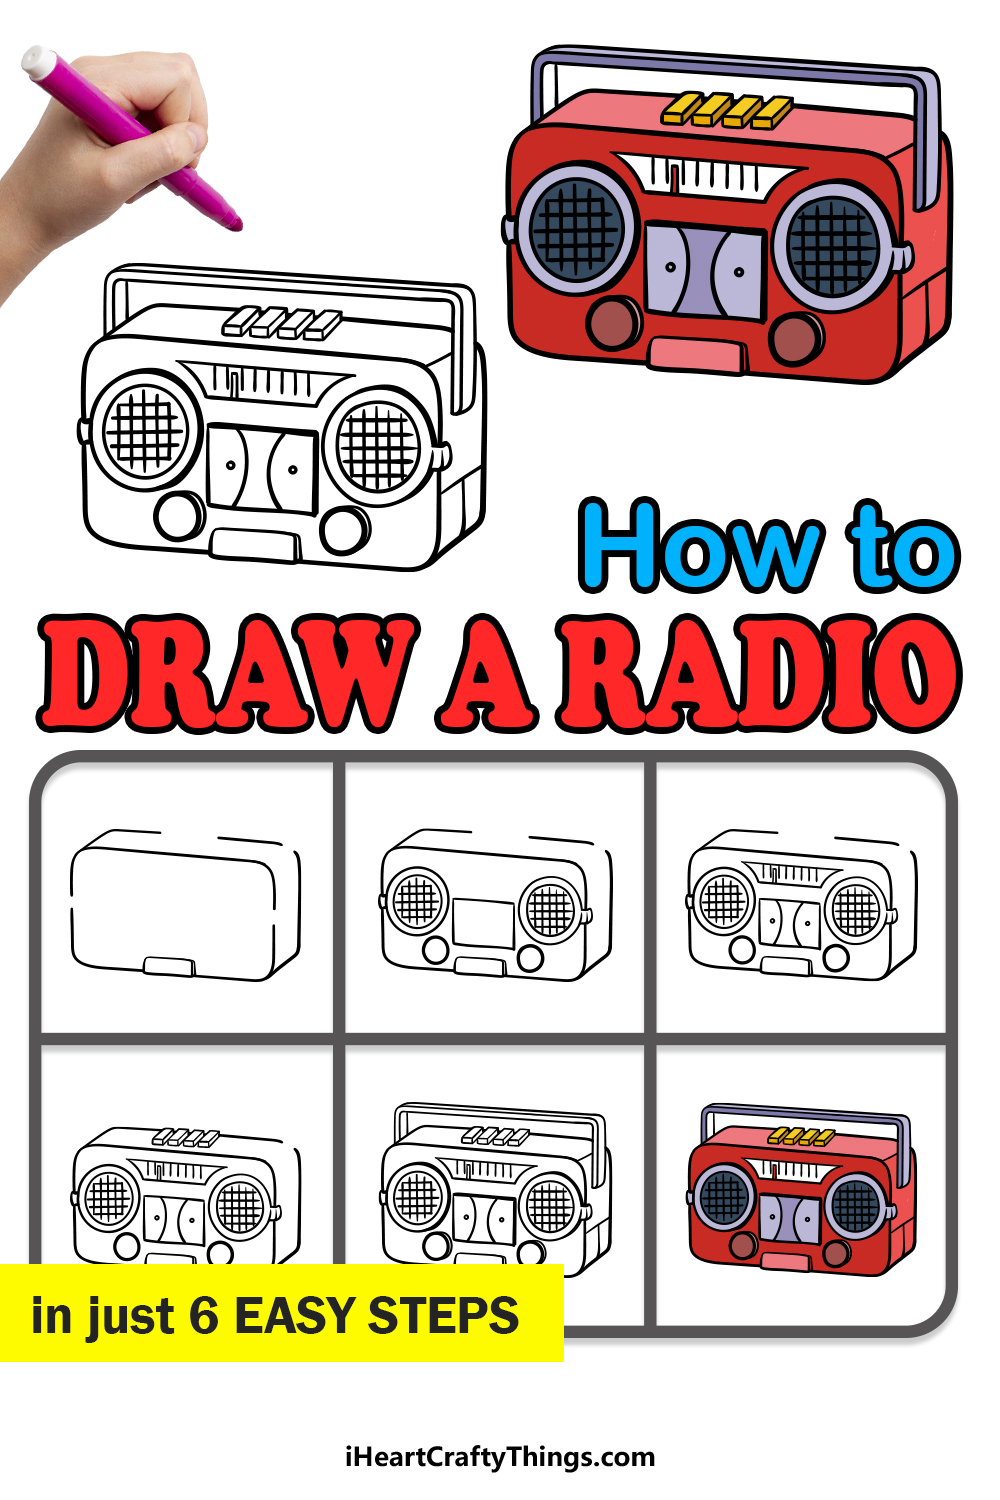 how to draw a radio in 6 easy steps